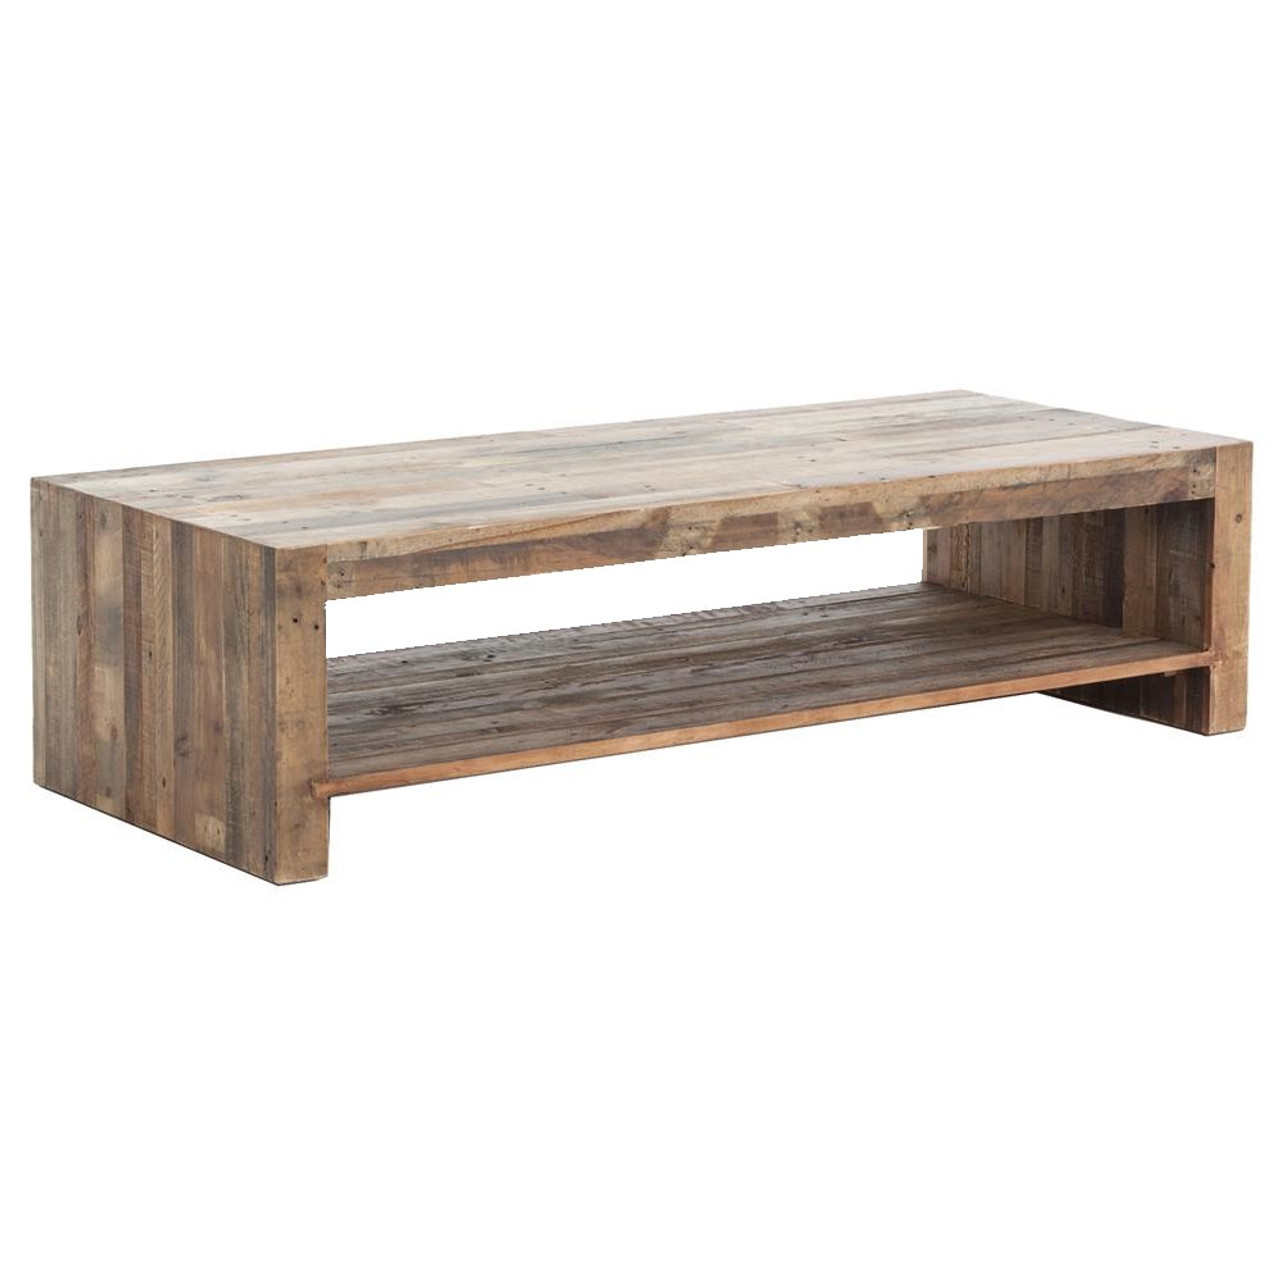 Angora Reclaimed Wood Coffee Table 48 Zin Home